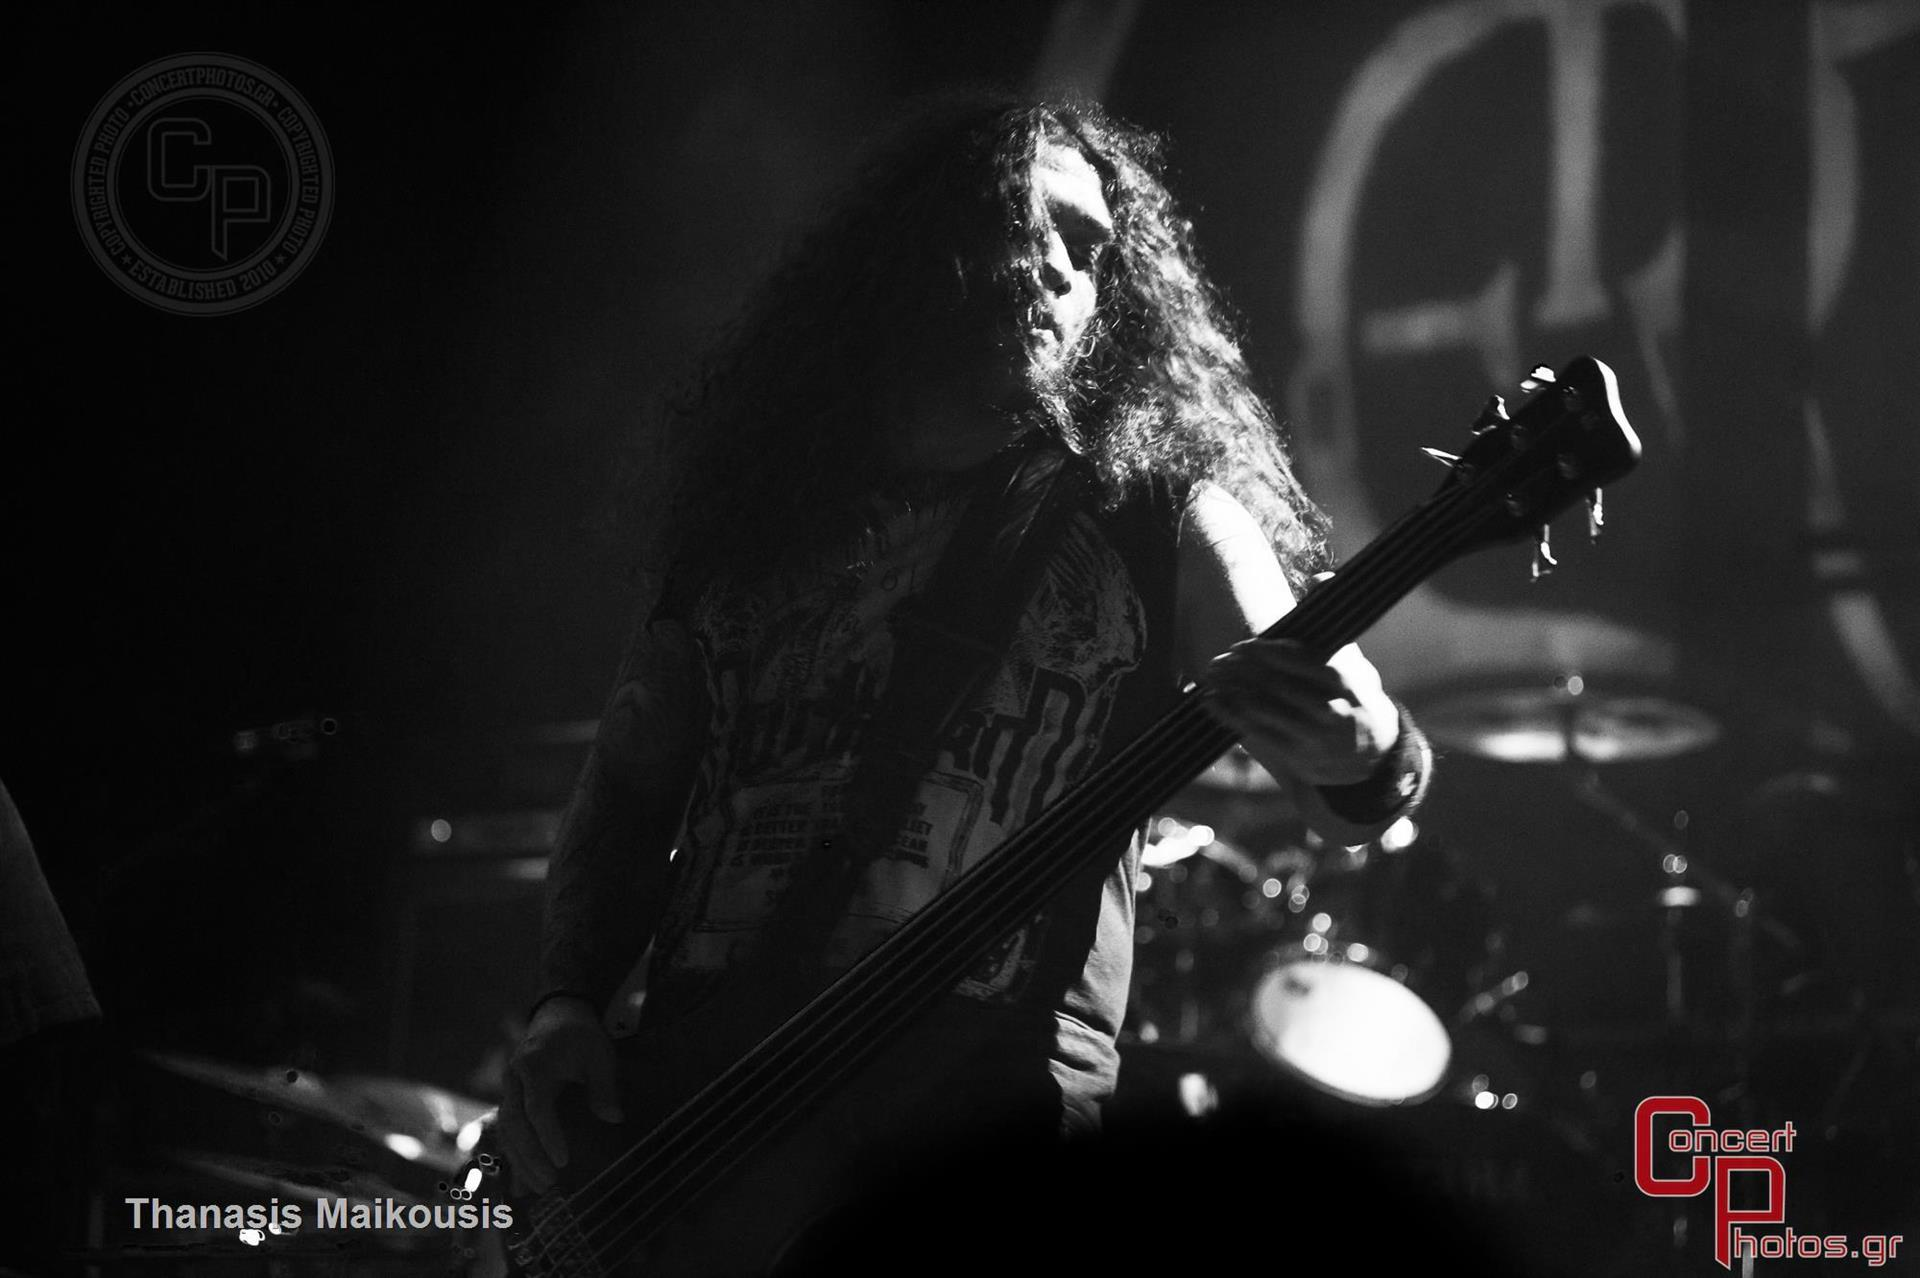 At The Gates-At The Gates Fuzz photographer: Thanasis Maikousis - ConcertPhotos - 20150109_2236_53